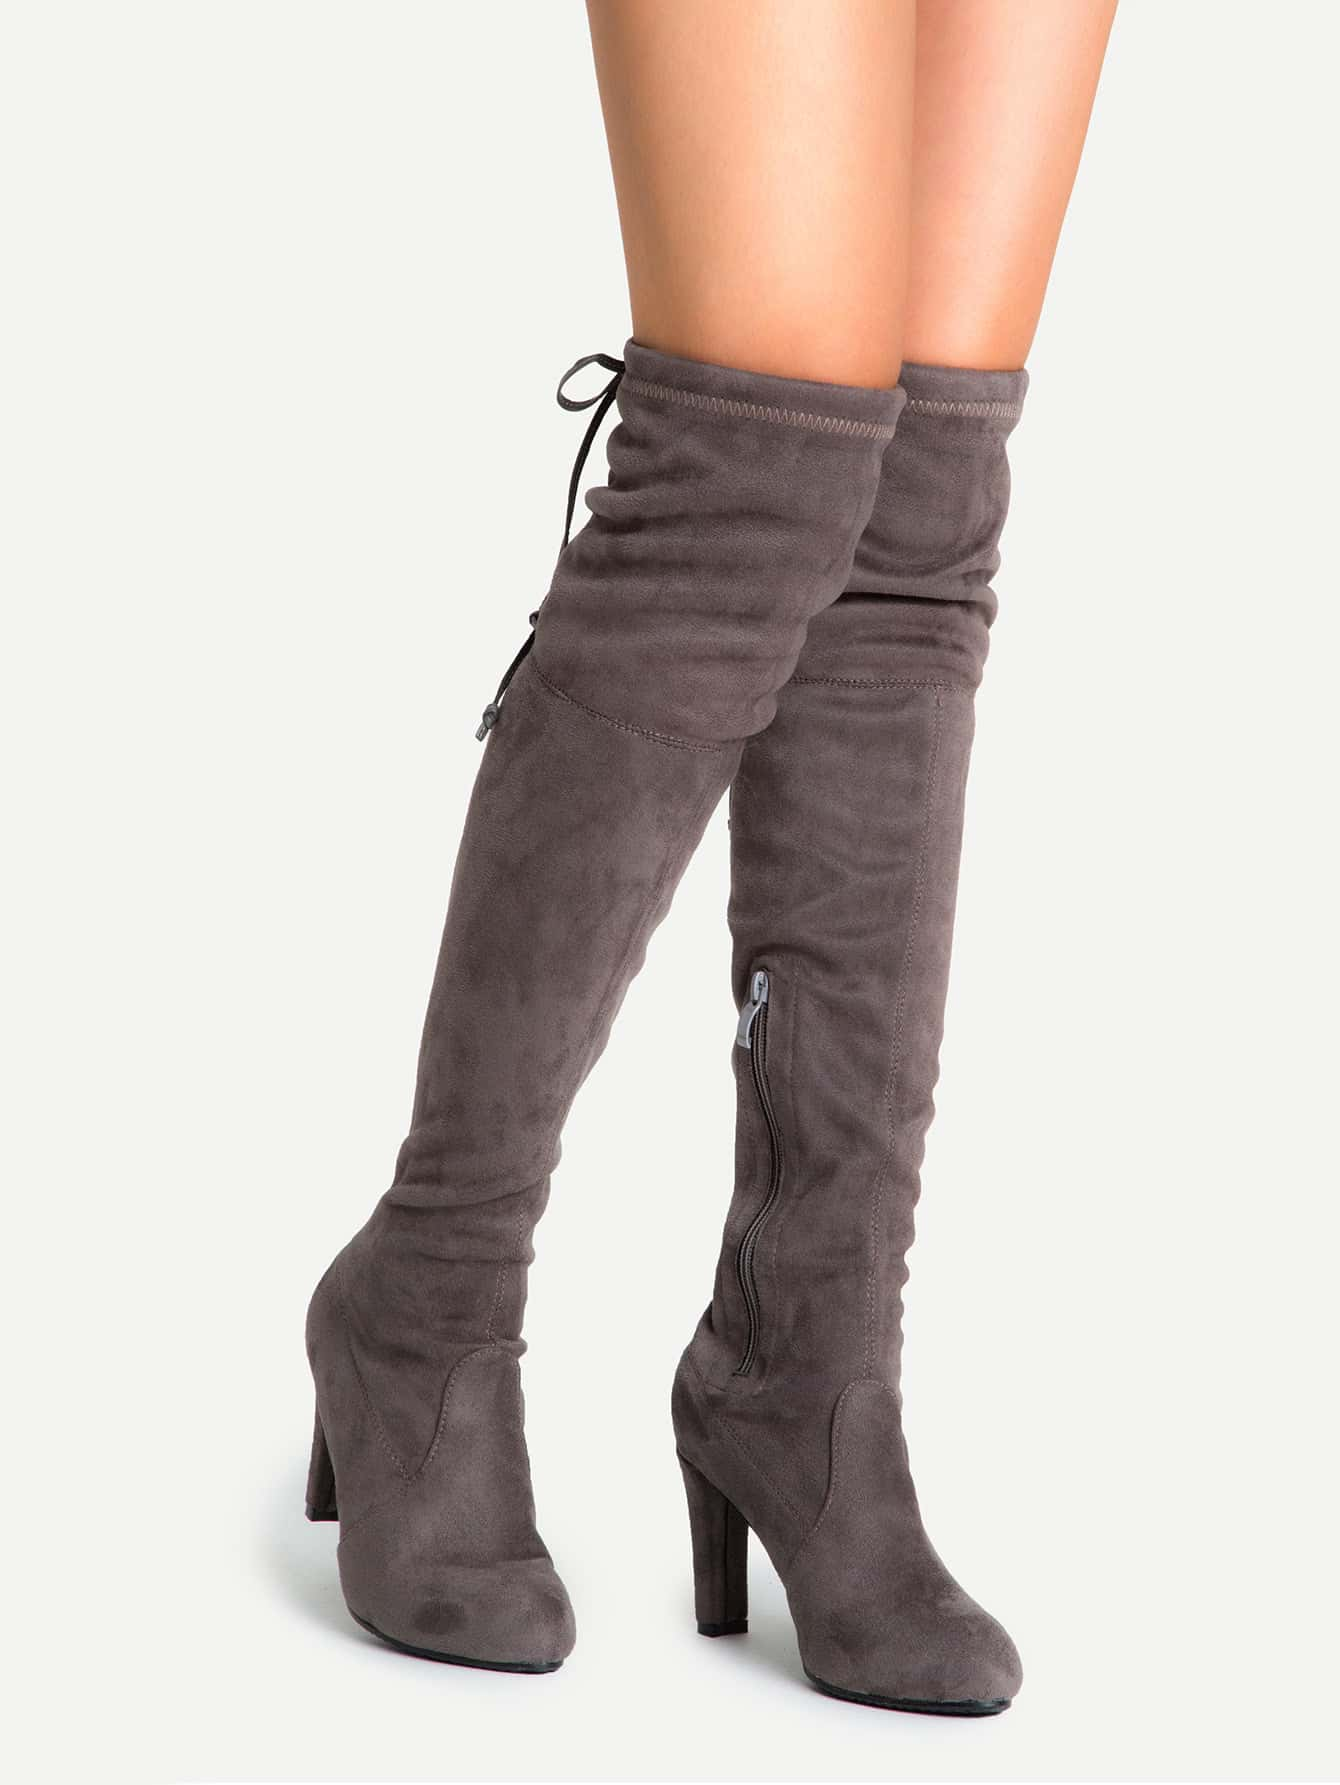 Coffee Suede Lace Up Side Zipper Over The Knee Boots shoes160816807